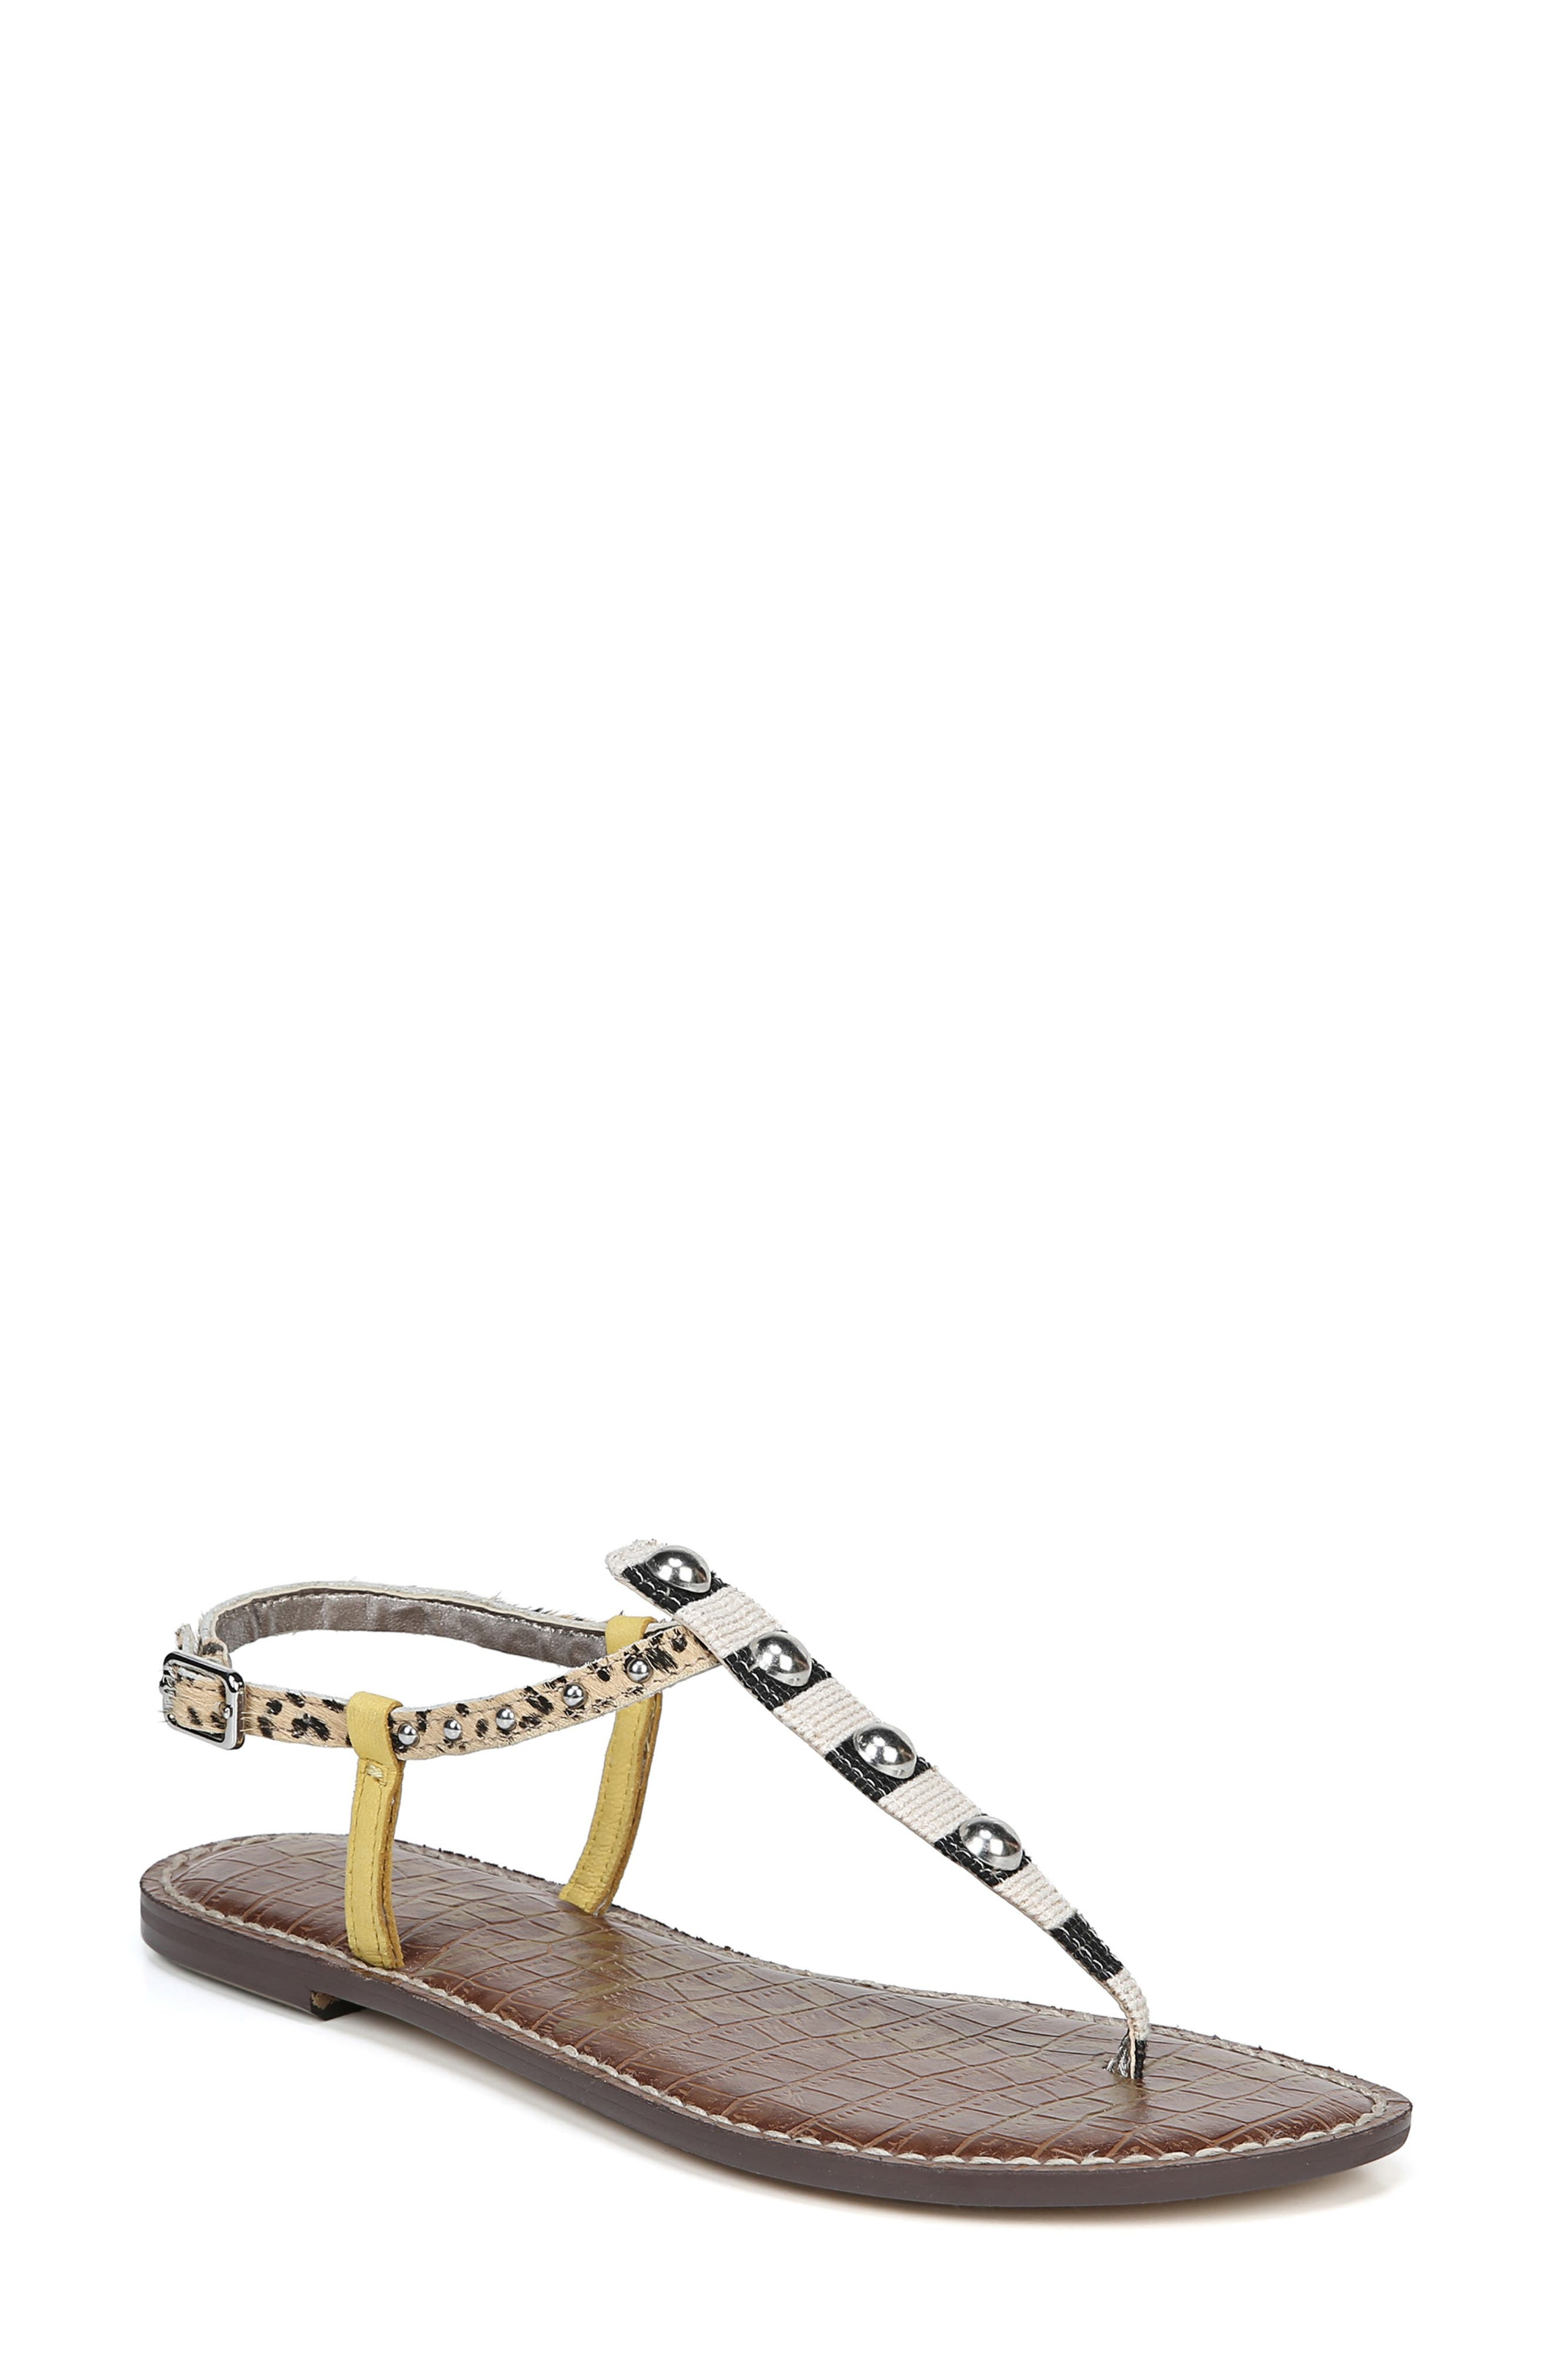 99935b610 Ankle Strap Sandals for Women